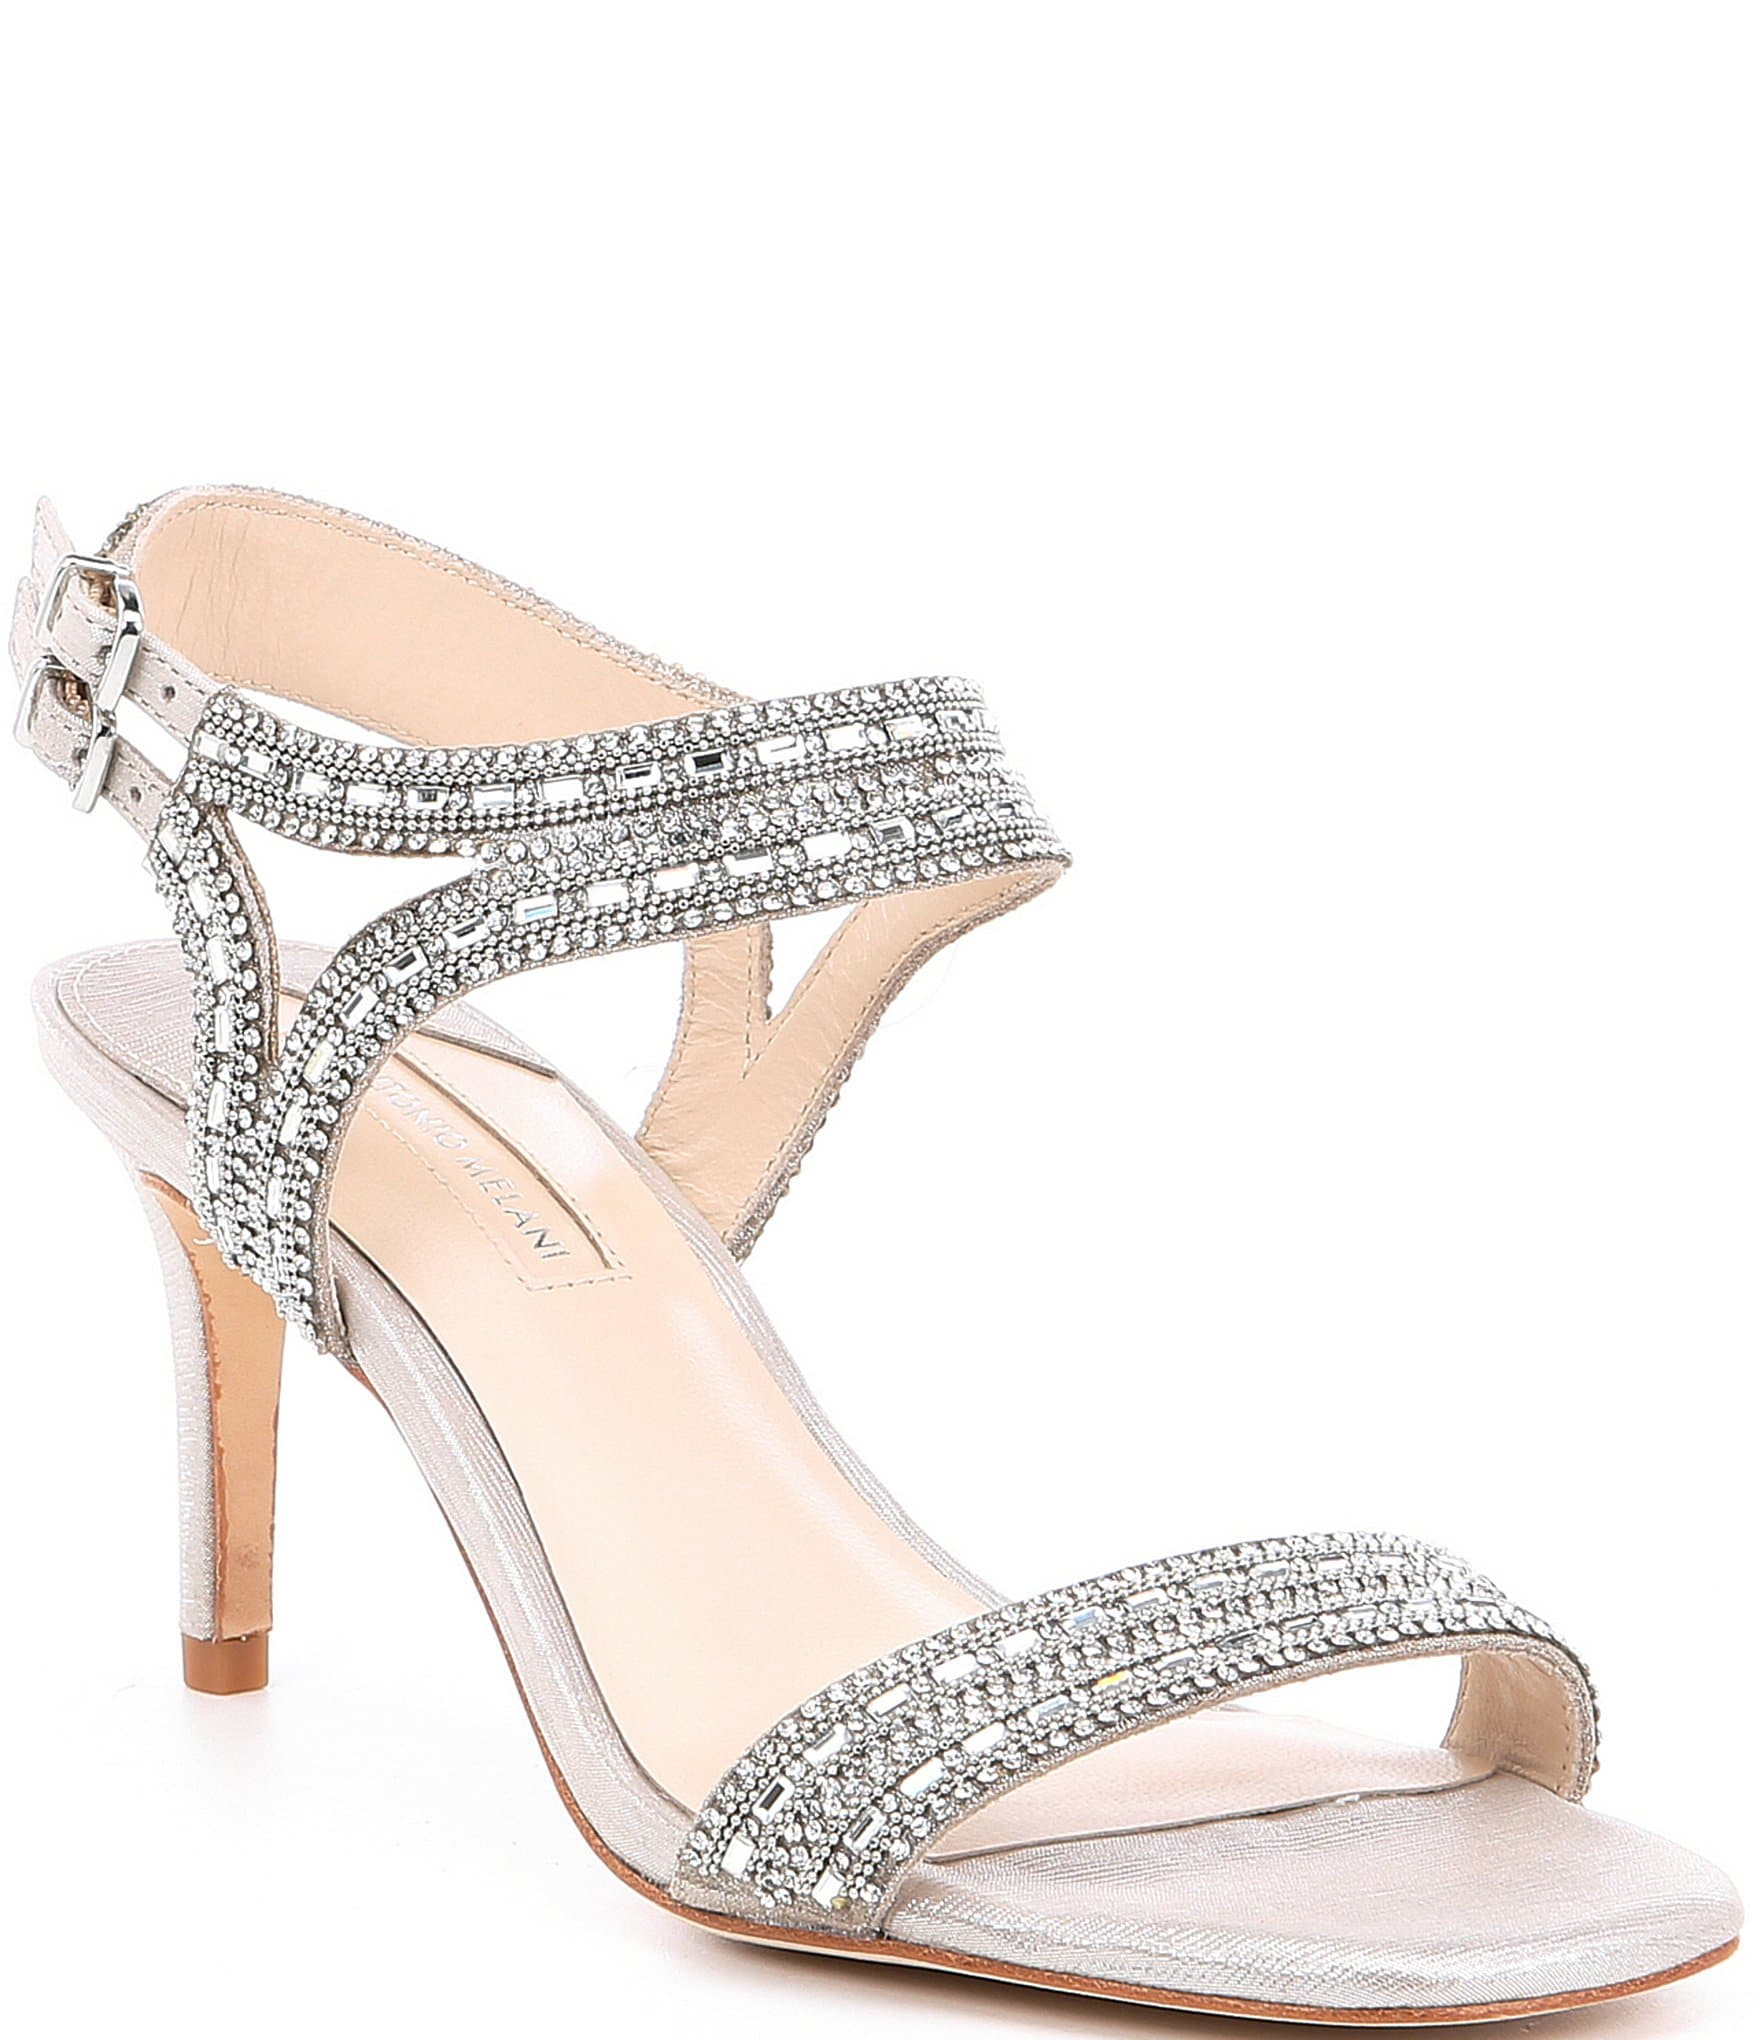 b36bba73ffd Antonio Melani Haelee Rhinestone Dress Sandals